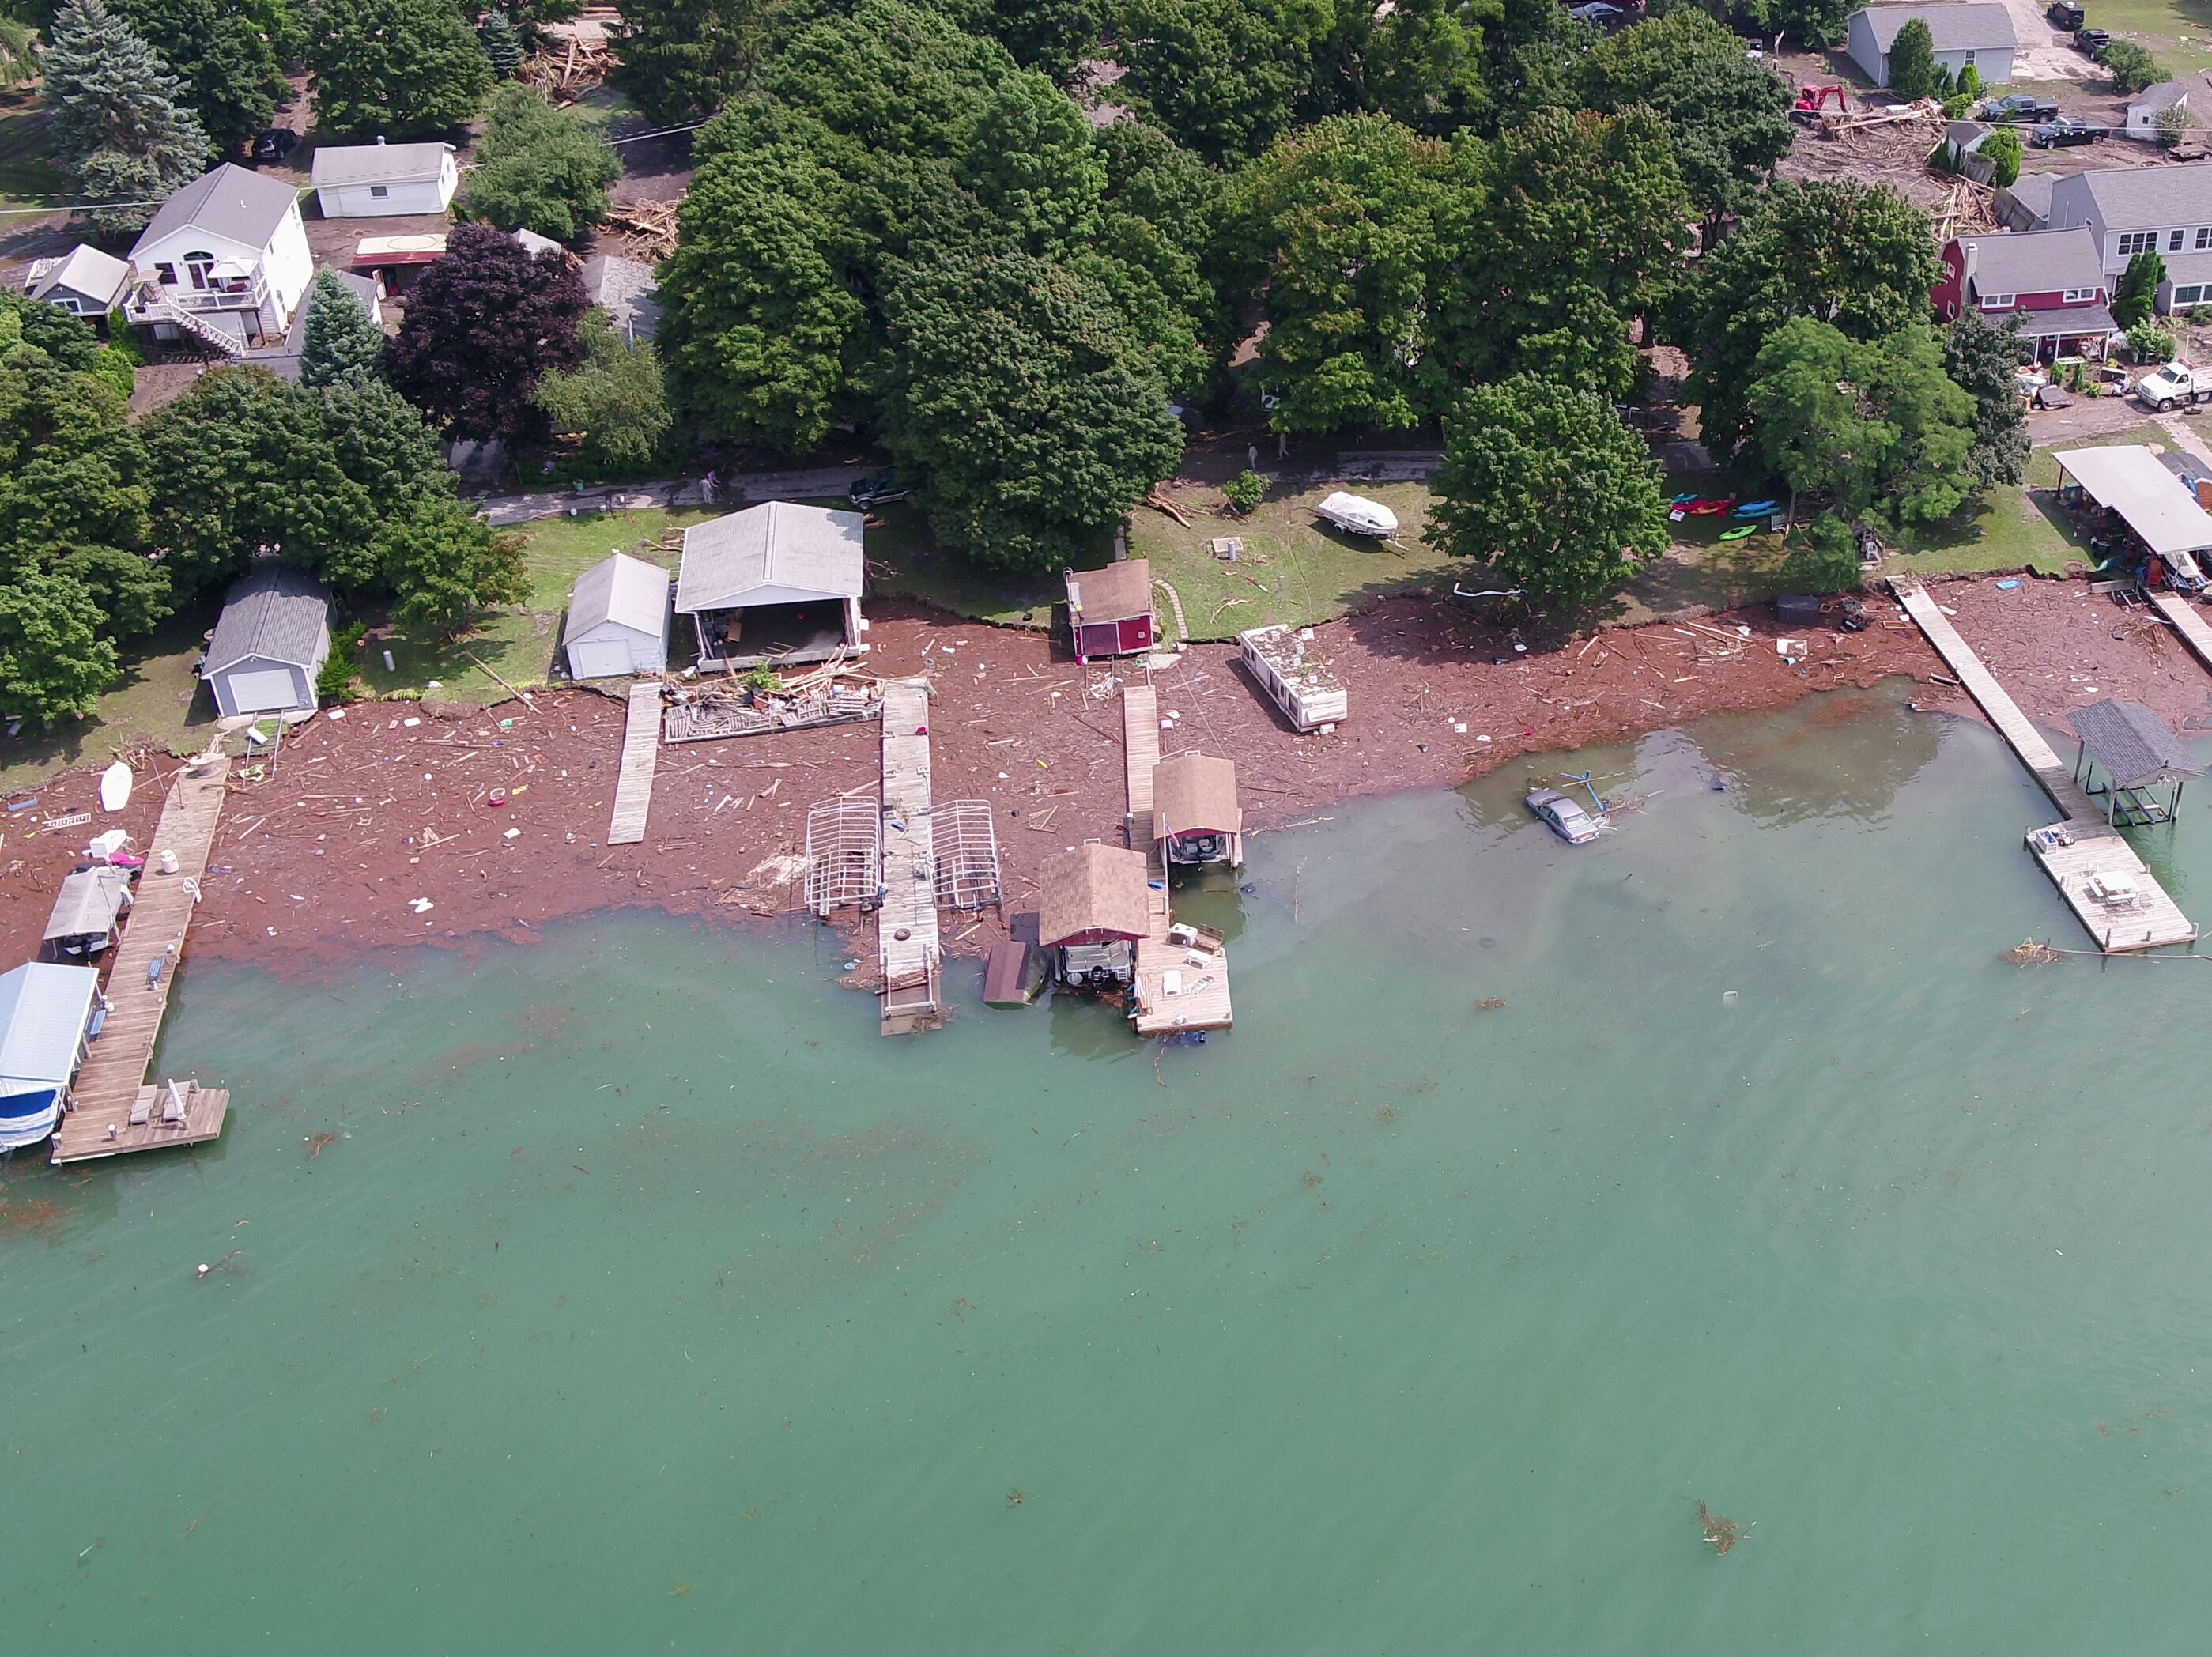 An aerial view of the Seneca Lake shore north of Lodi Point Marine Park shows the damage, including a car submerged in the lake, from Tuesday's flooding. This image was captured from the Democrat and Chronicle's unmanned aircraft system on Wednesday.